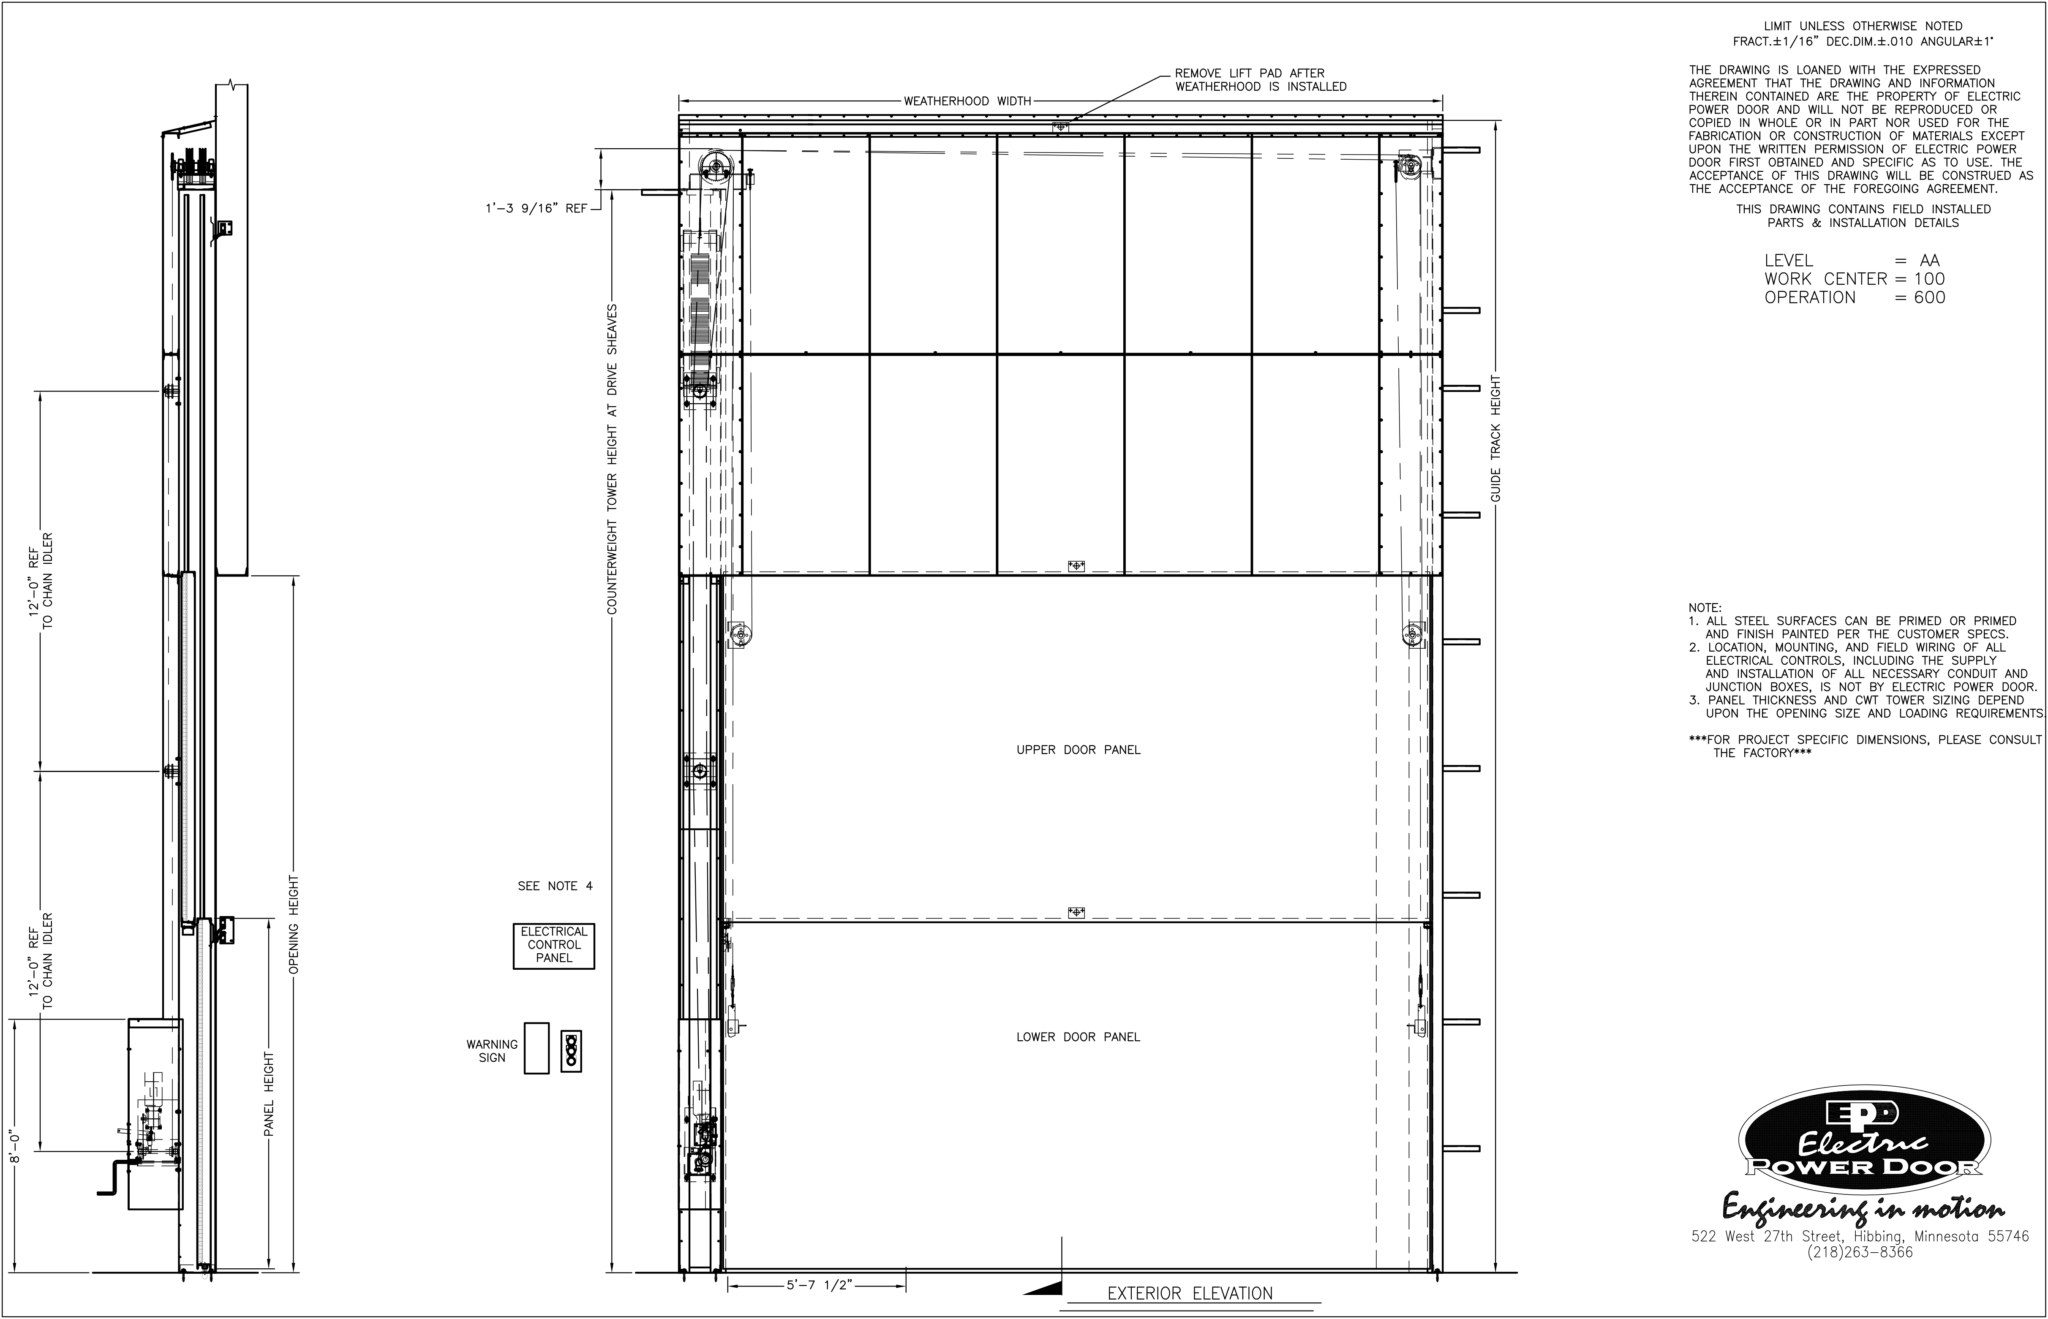 Vertical Lift Amp Drop Doors